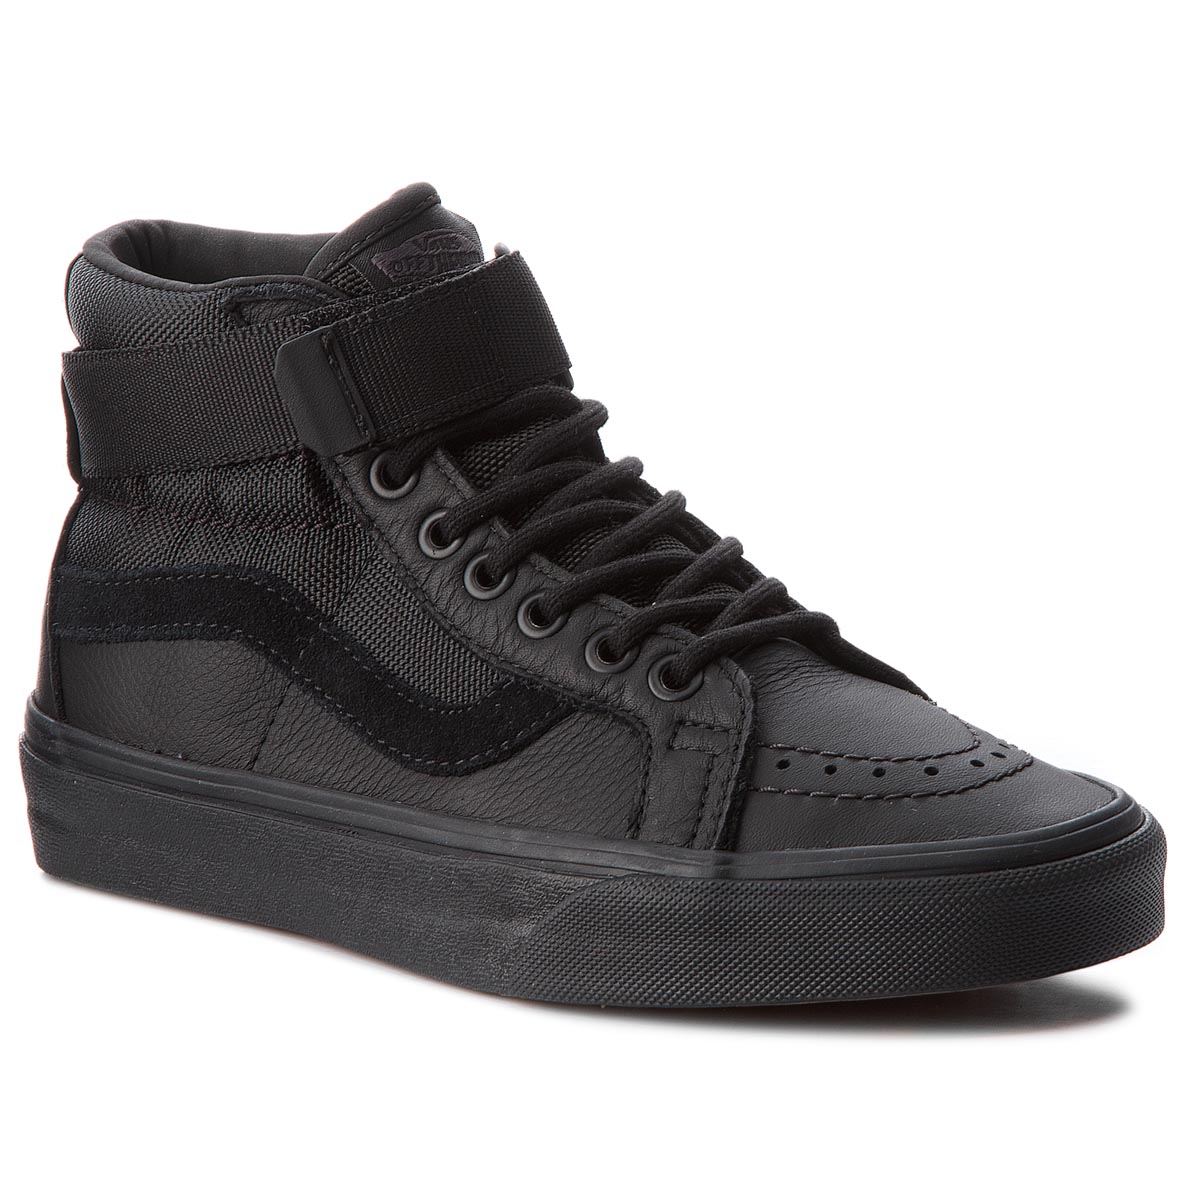 58a3147dfd Sneakersy VANS - Sk8-Hi Reissue VN0A3QY2UB4 (Leather) Ballistic Black